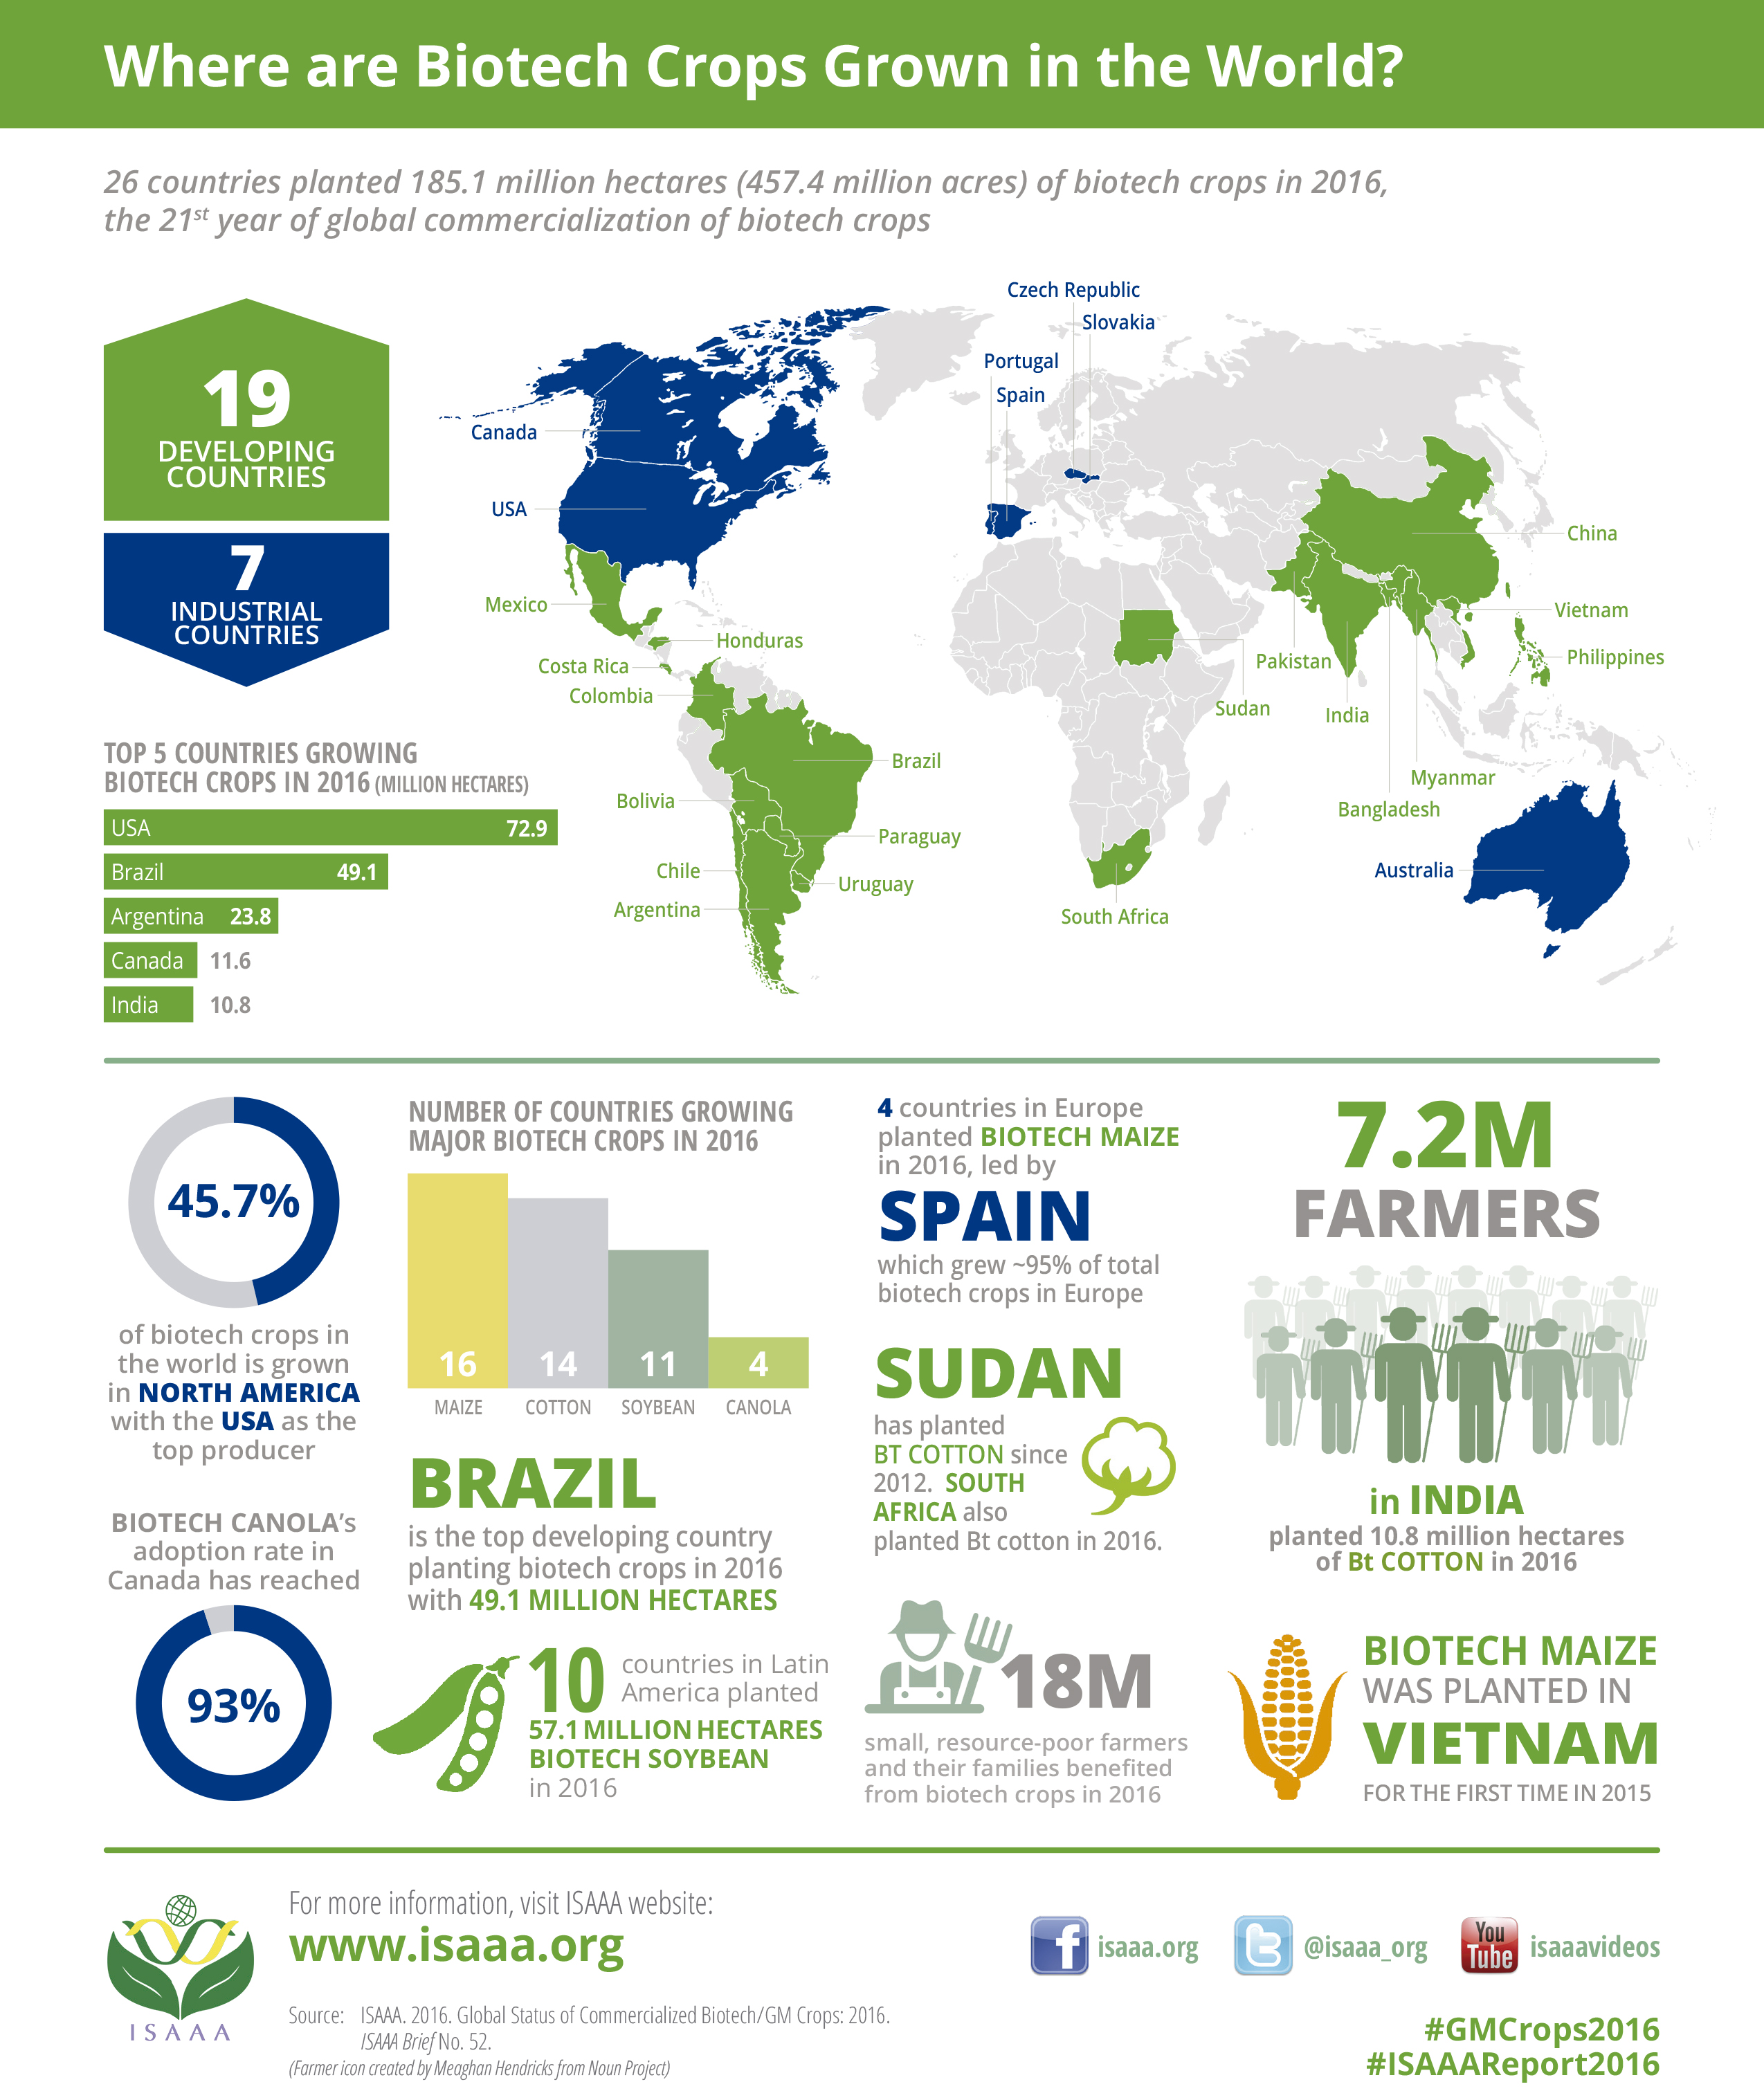 Where are Biotech Crops Grown in the World?